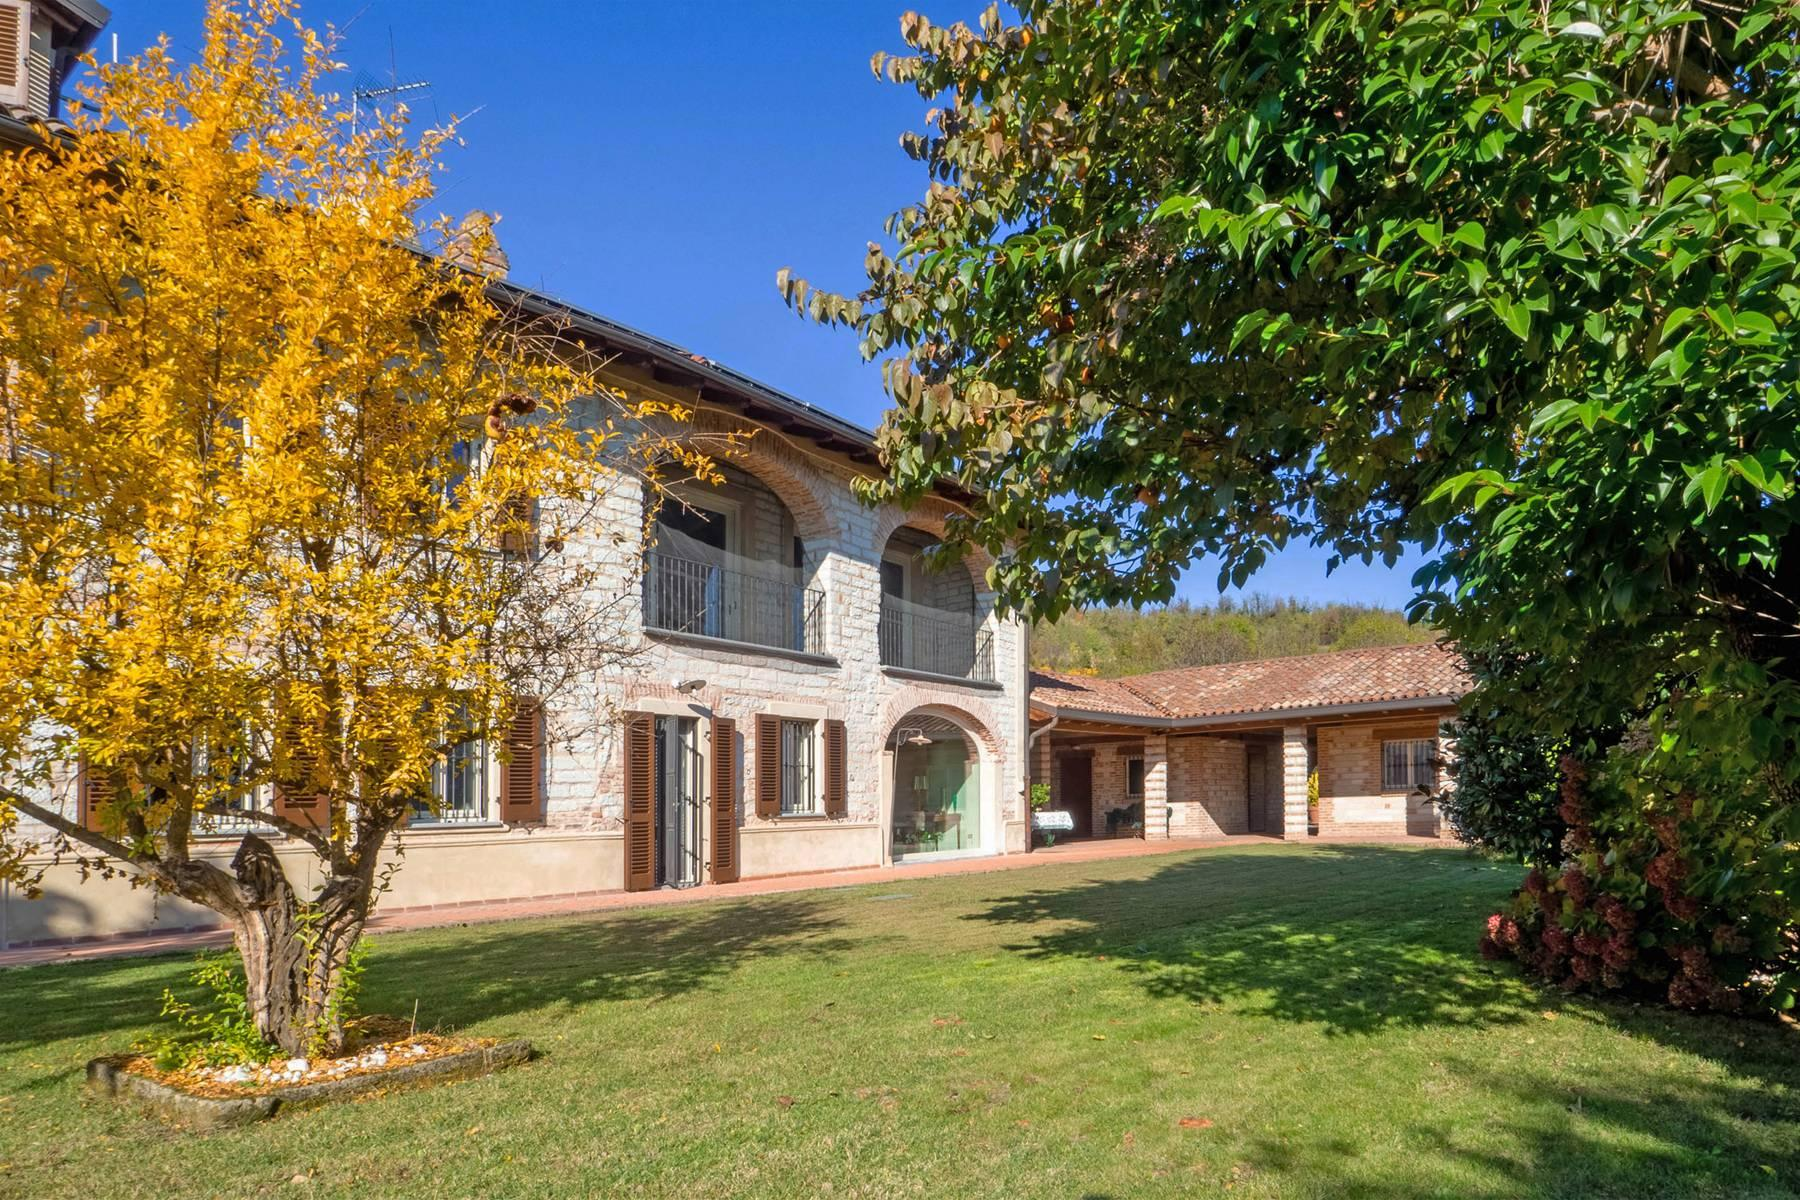 Refined farmhouse nestled in the hills of Monferrato - 1